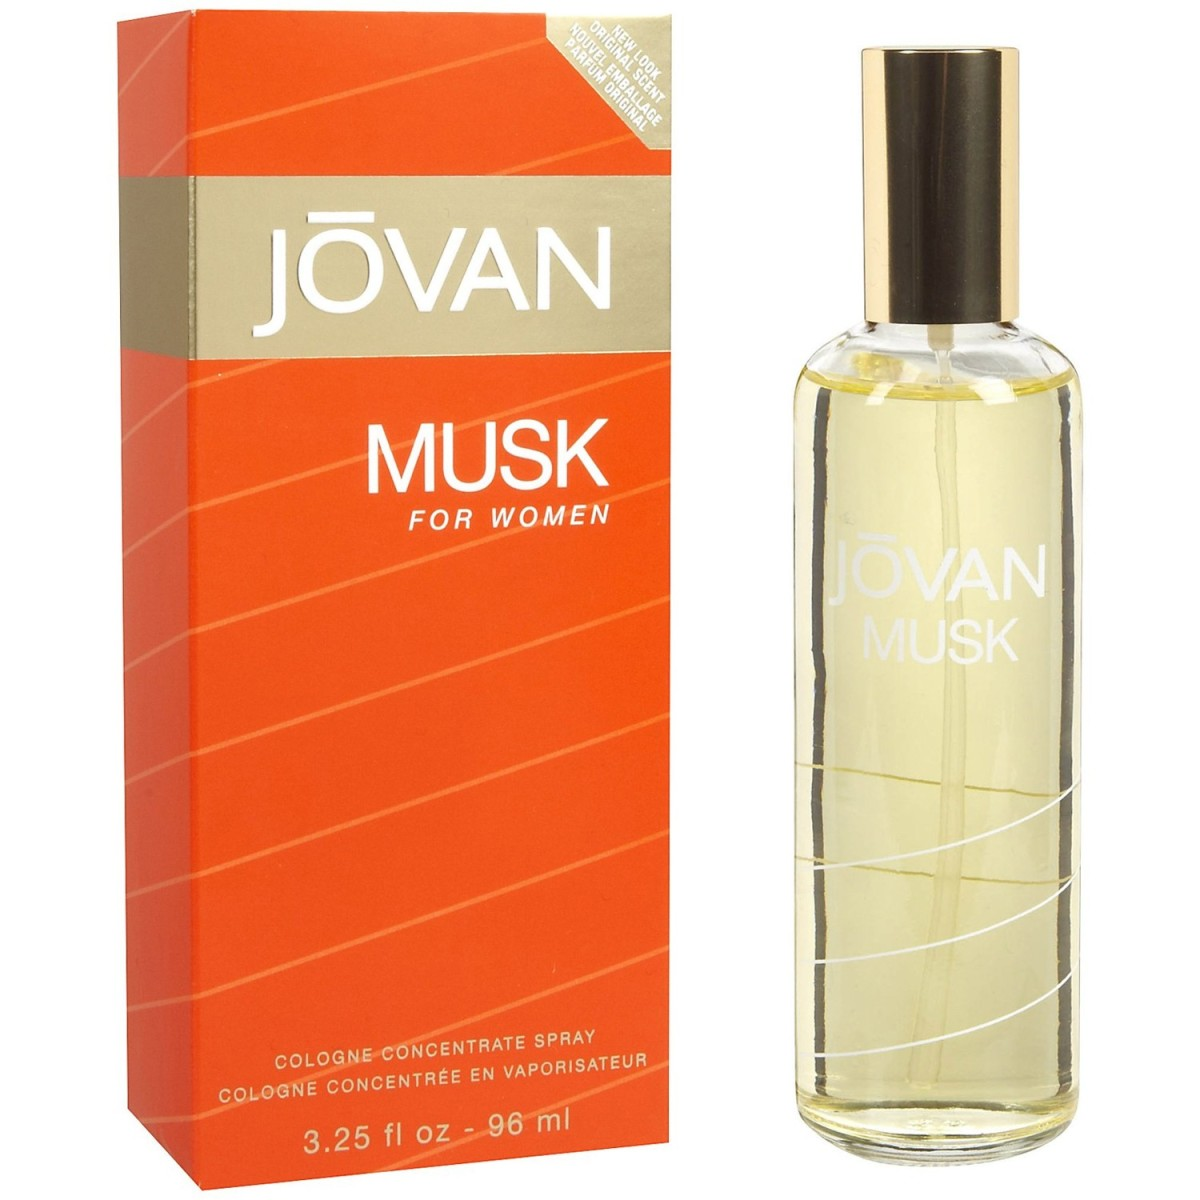 Jovan Fragrance Musk: One of the Long Lasting Fragrance Leaders